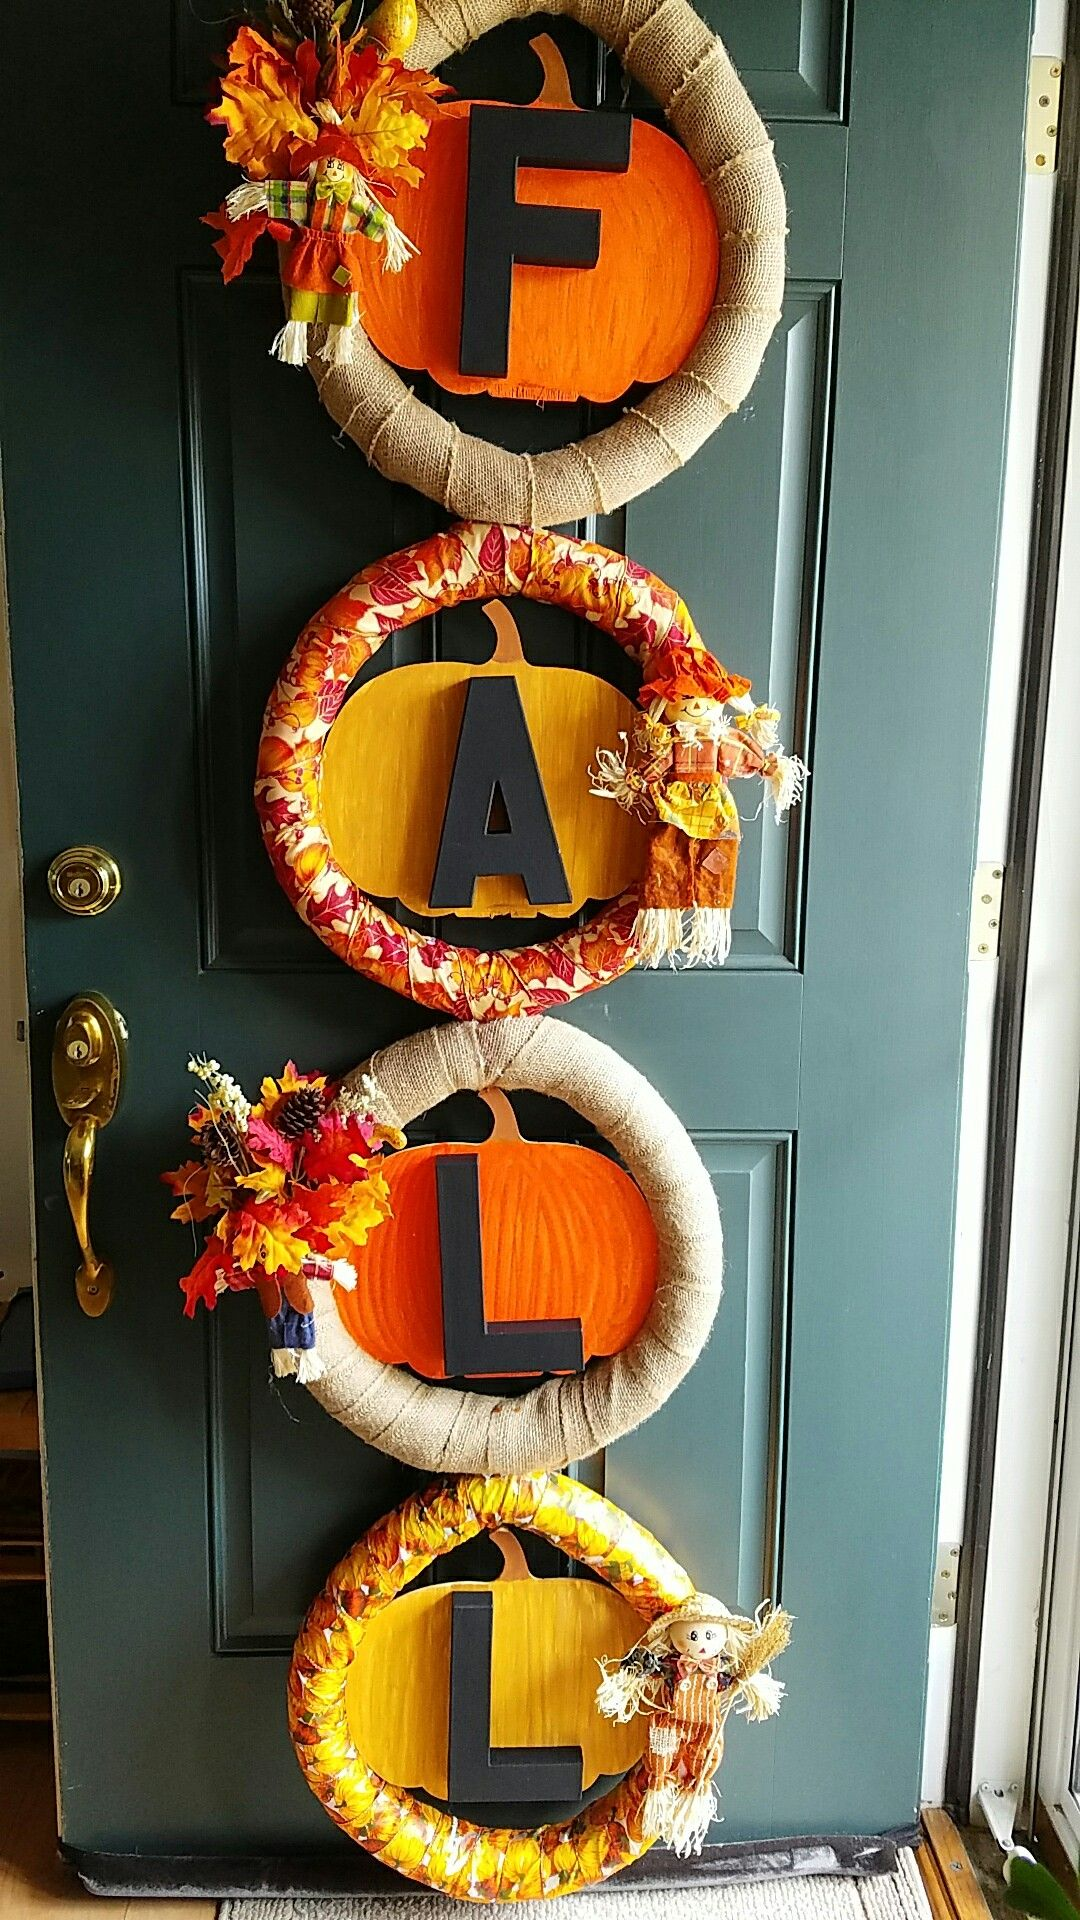 Wreath i made to hang on my front door. Fall decor